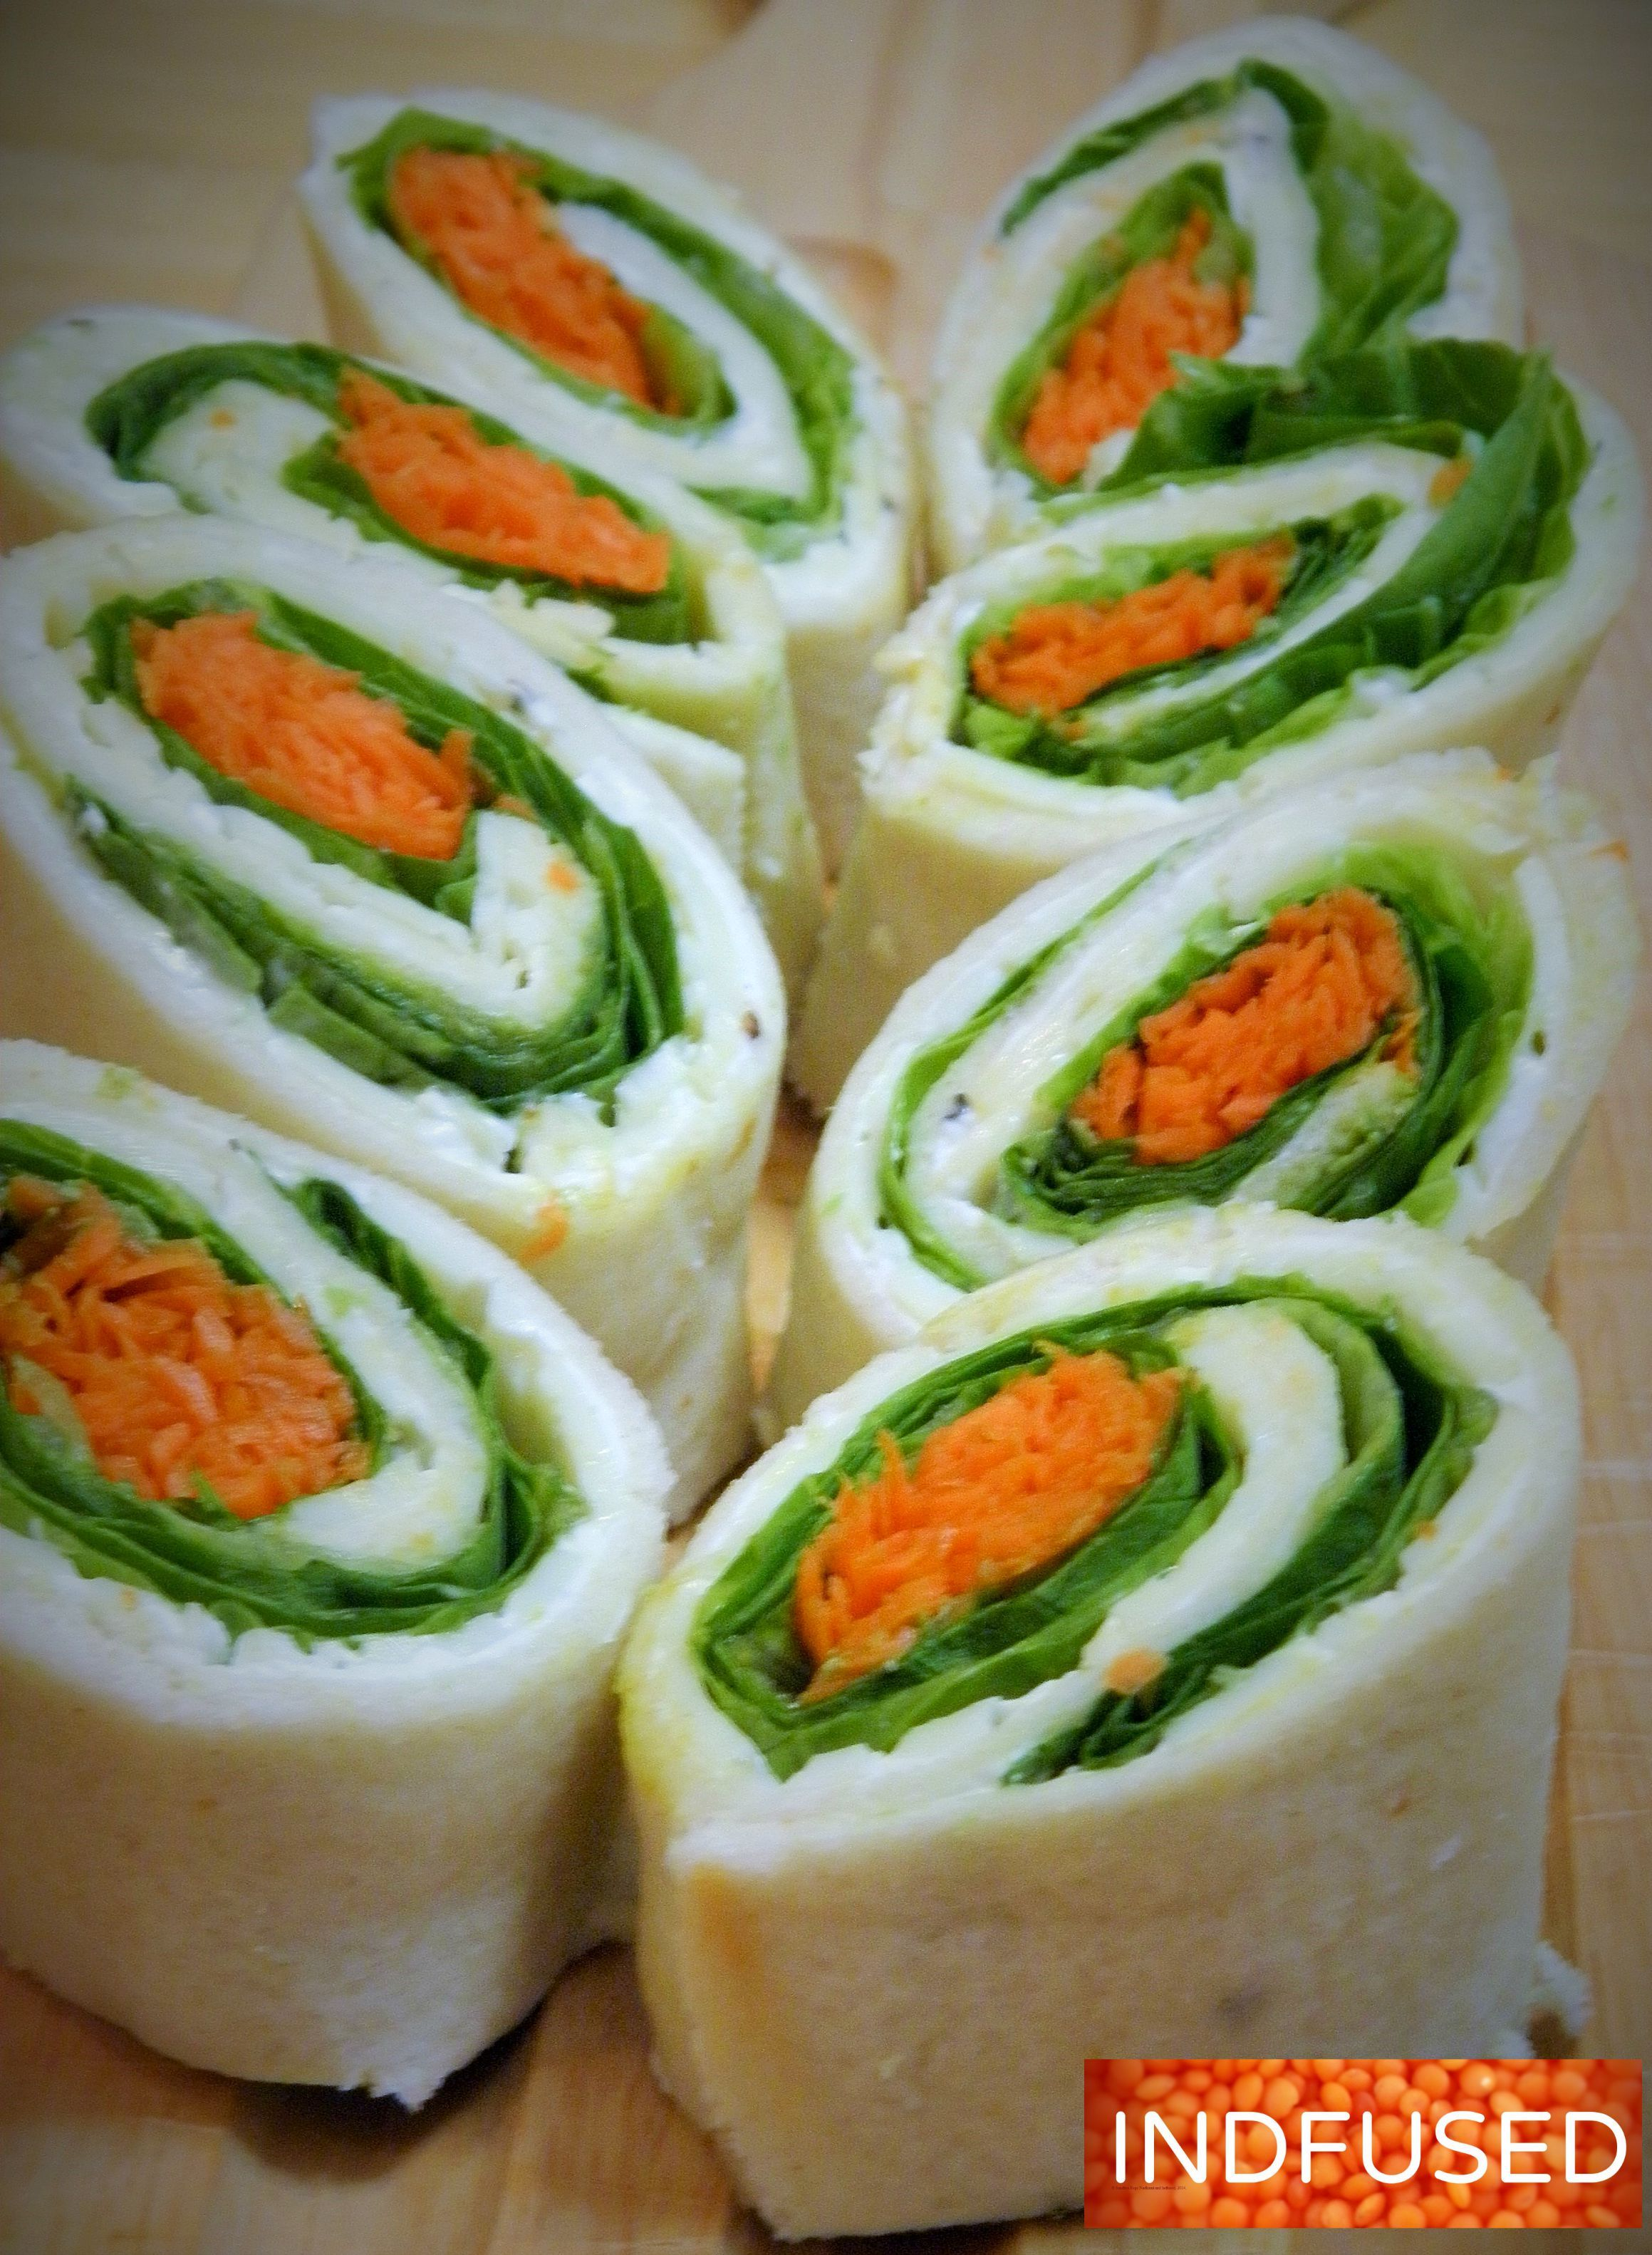 Tiranga tea sandwiches tea sandwiches teas and cuisine recipe for quick and easy vegetarian indian fusion cuisine forumfinder Images